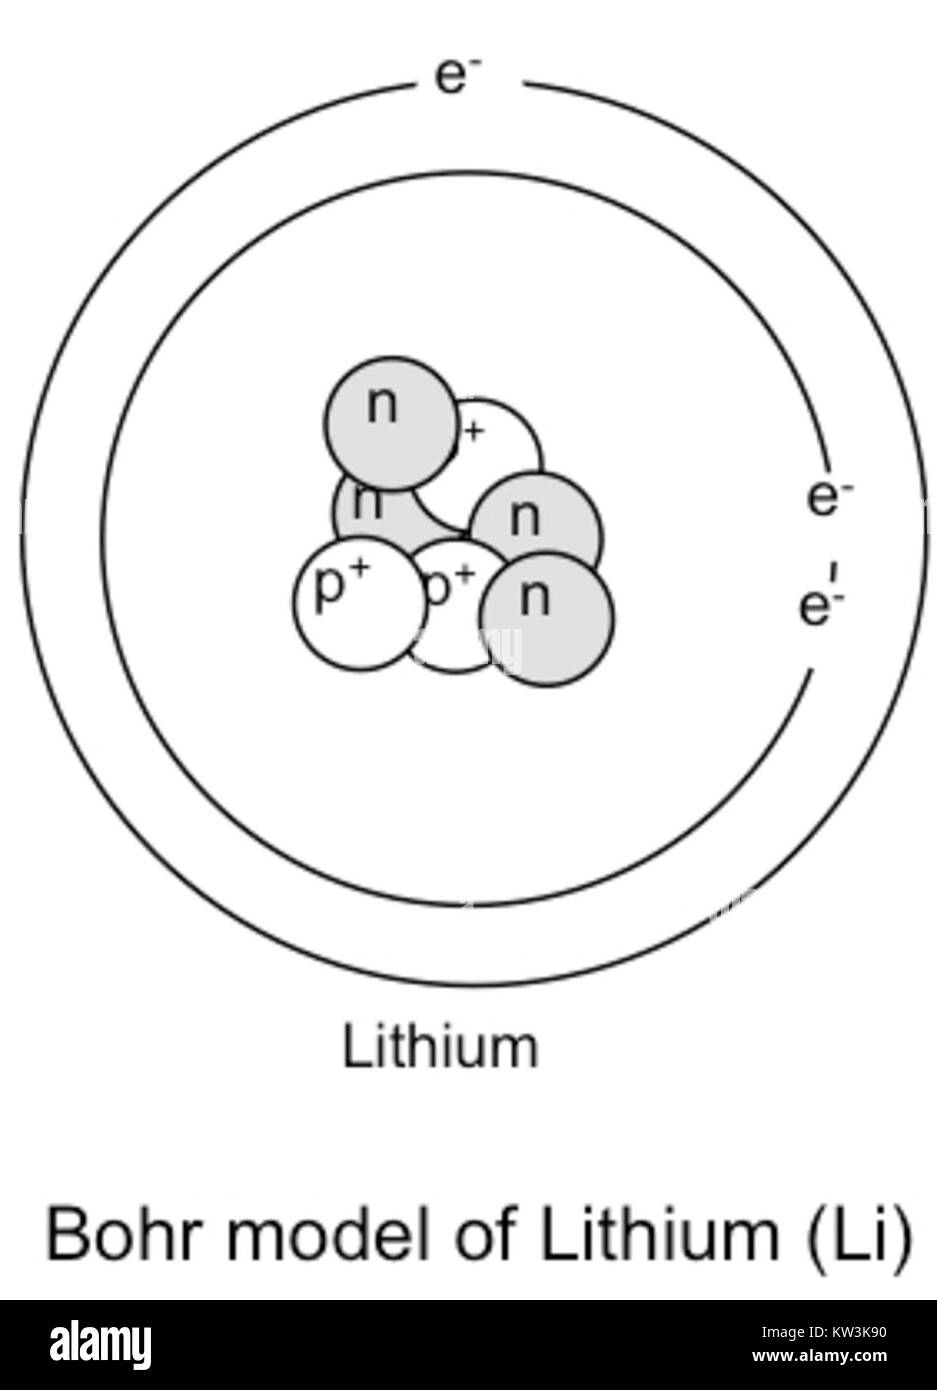 hight resolution of bohr model of lithium stock image